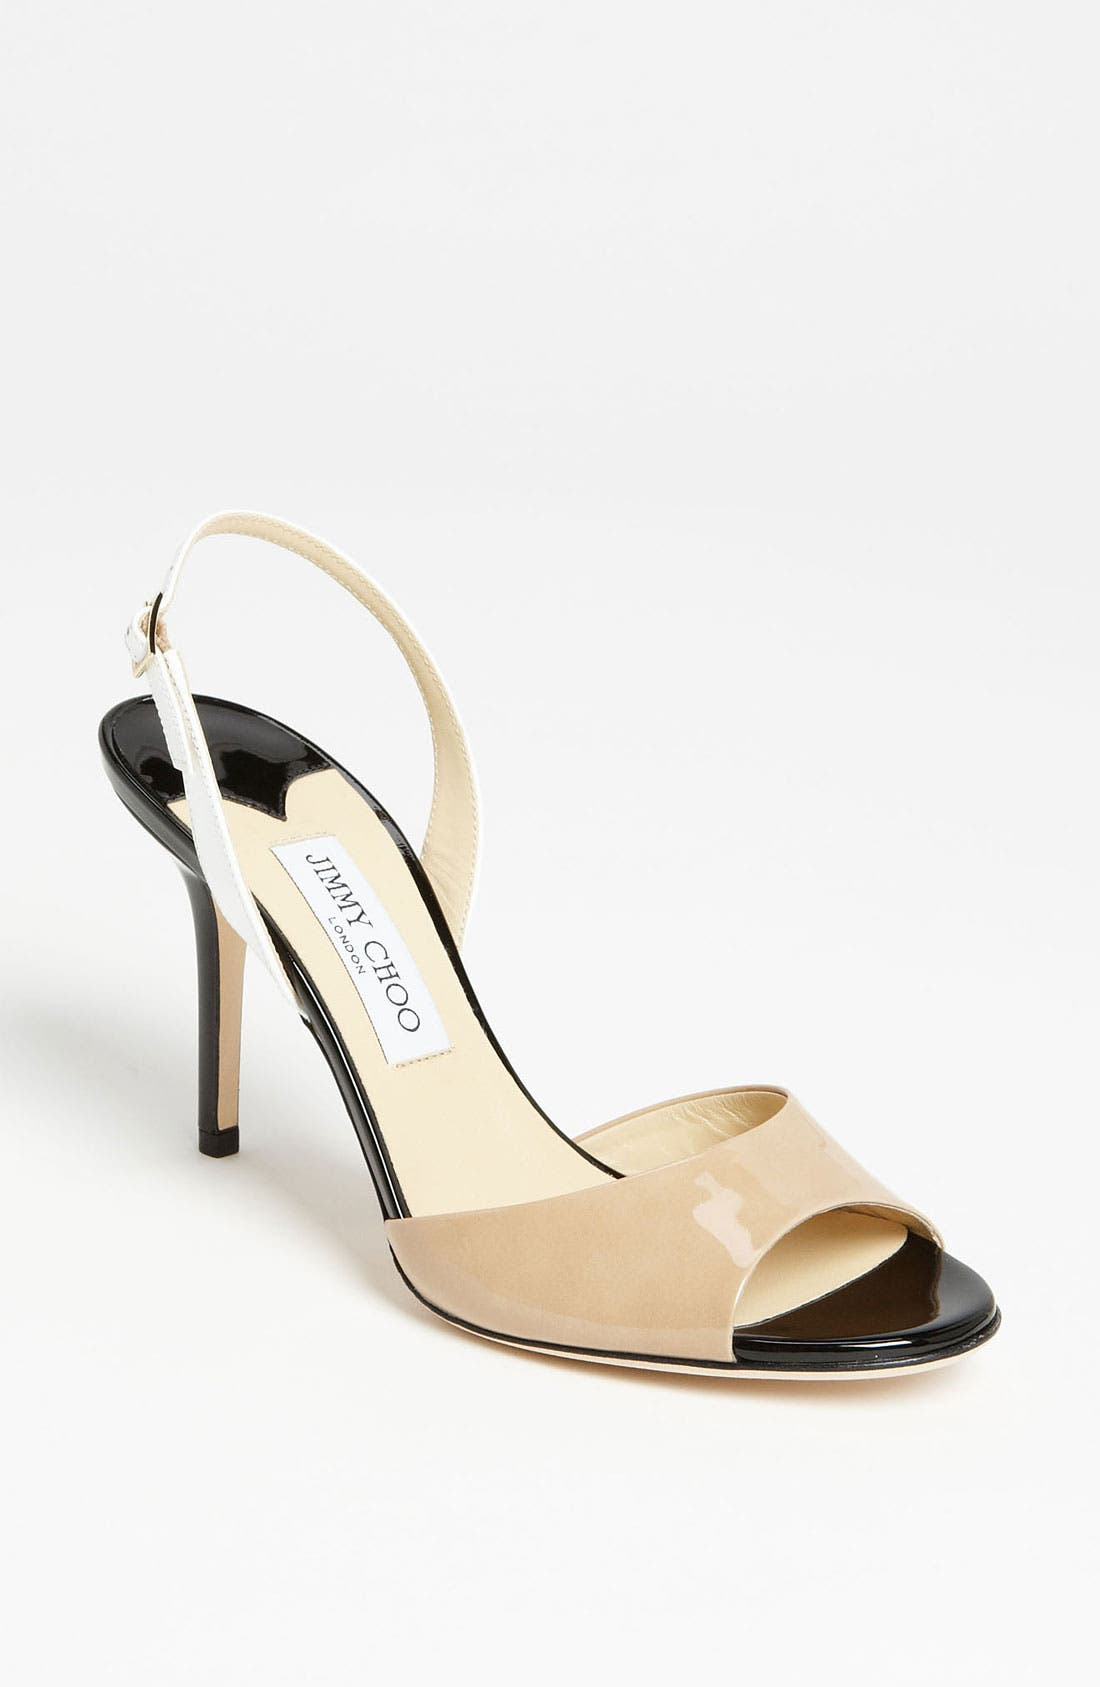 Alternate Image 1 Selected - Jimmy Choo 'Vela' Sandal